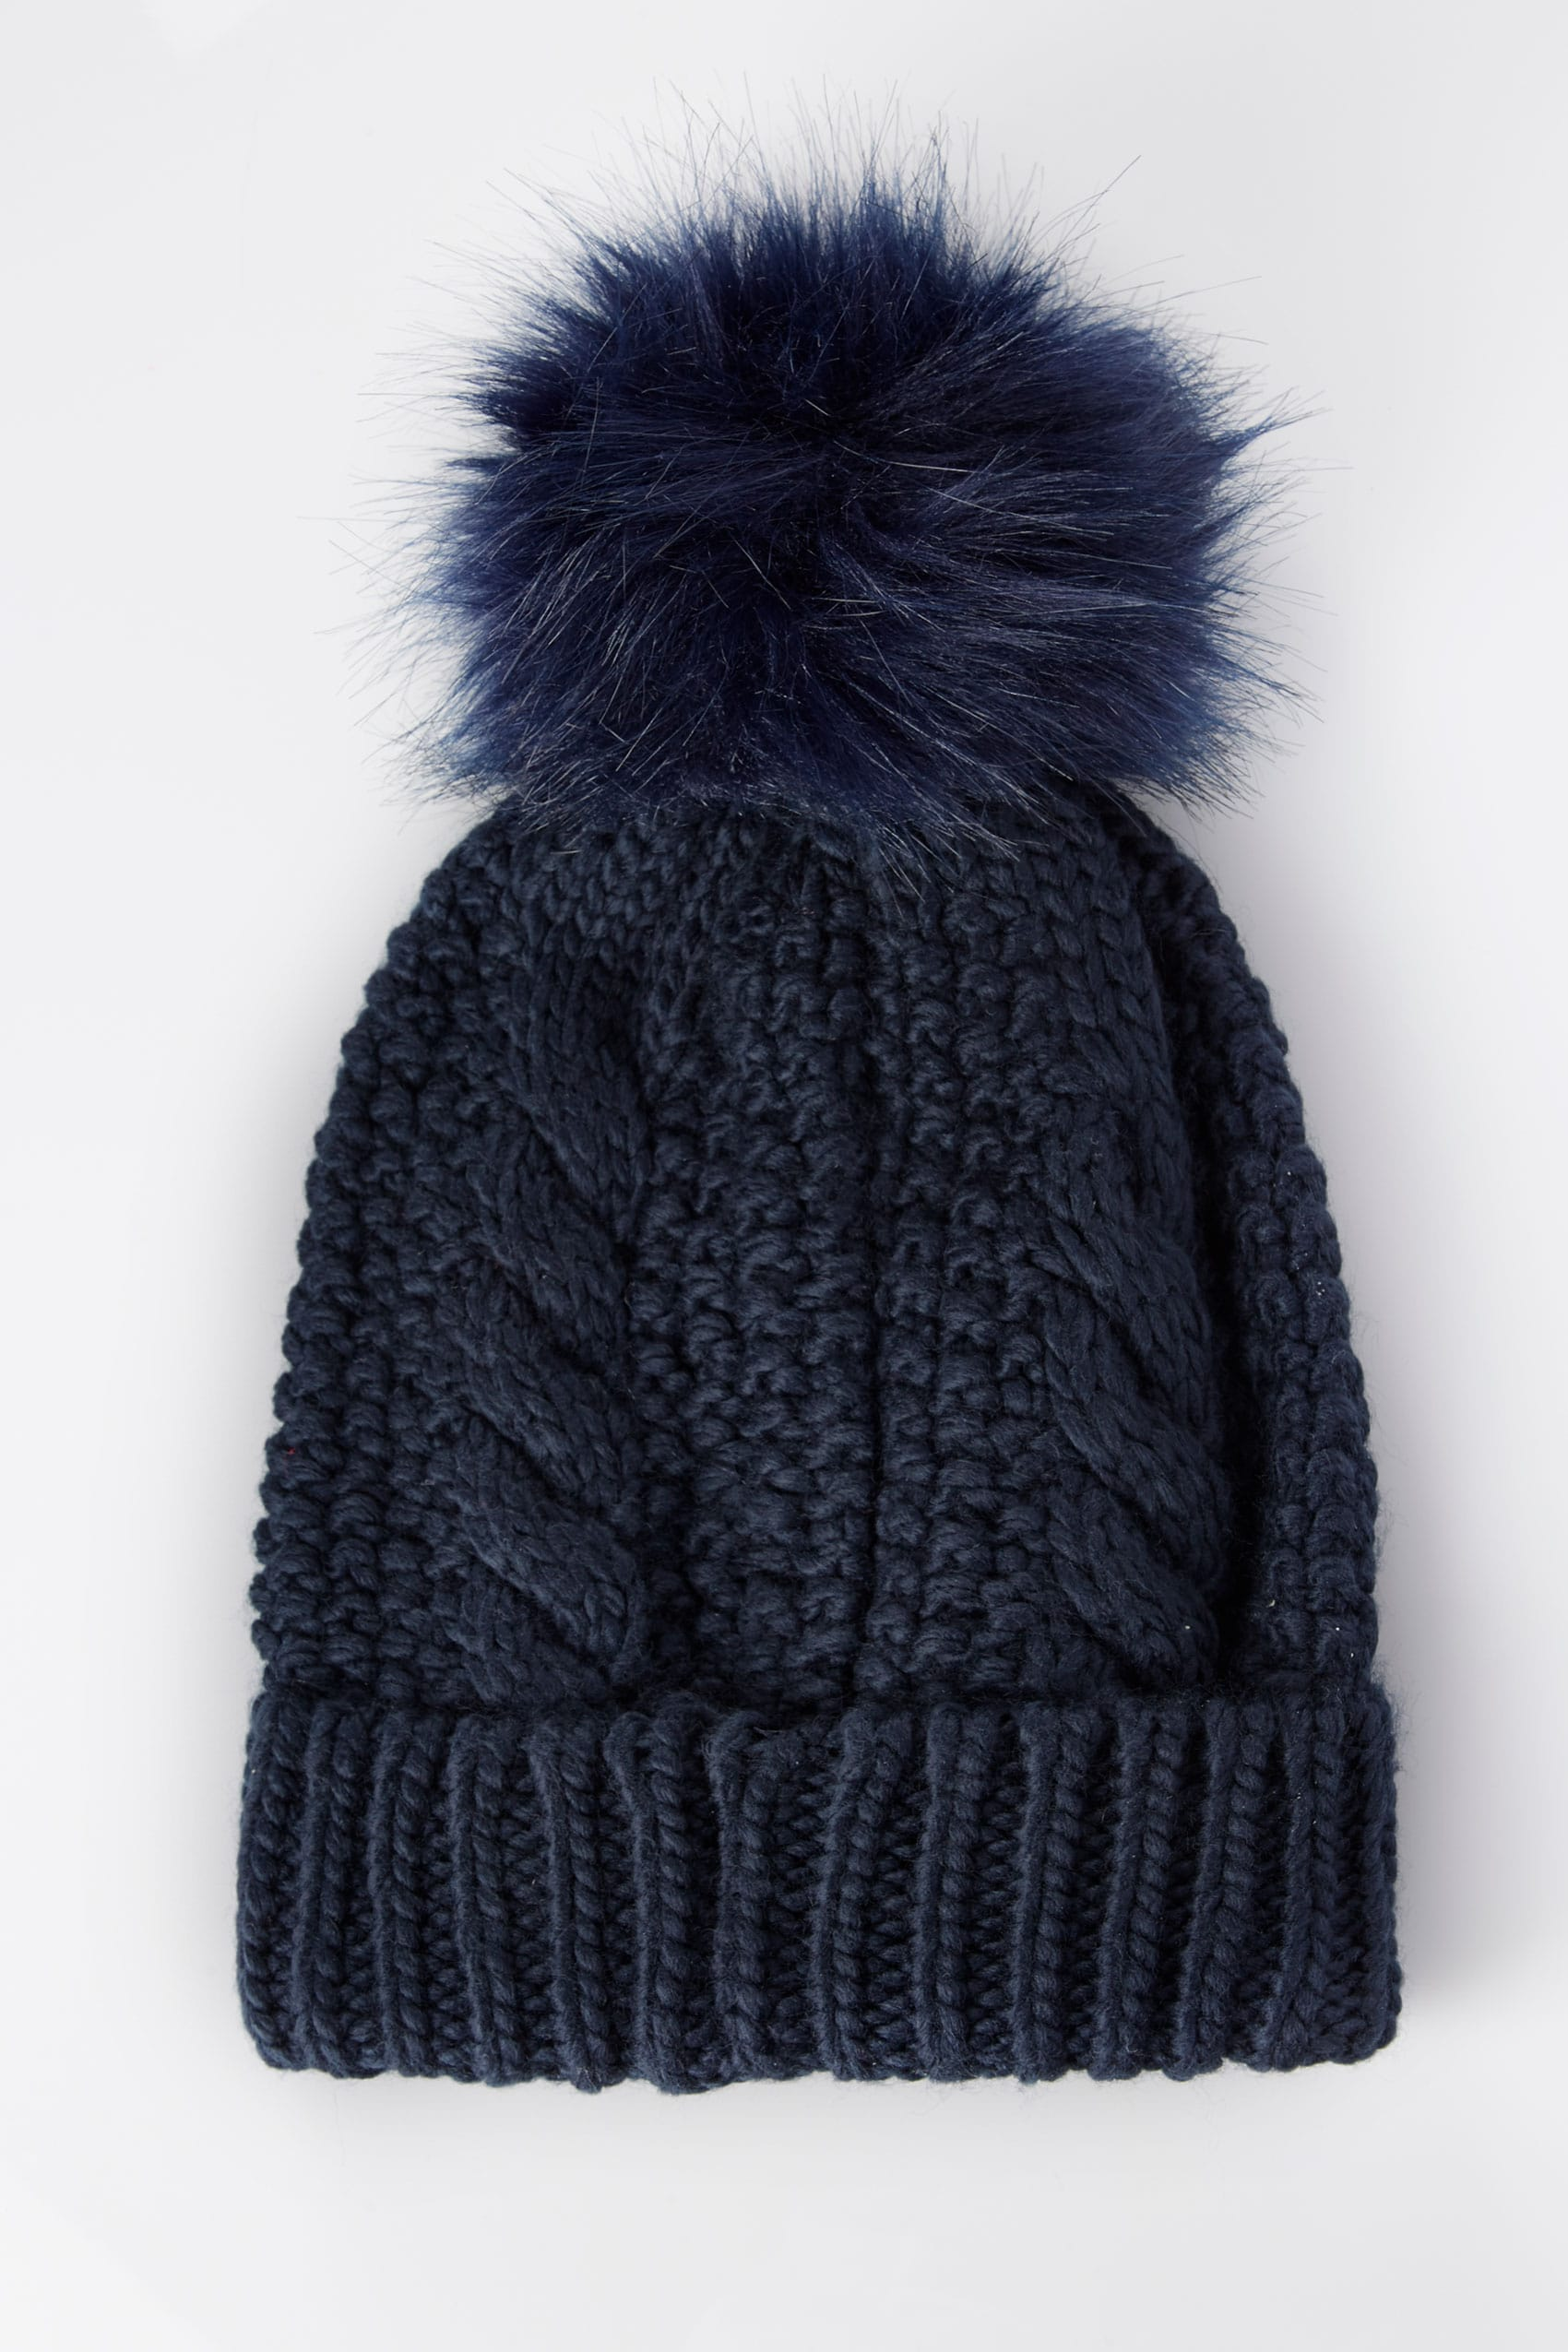 075d0095271 Navy Cable Knit Hat With Pom-Pom